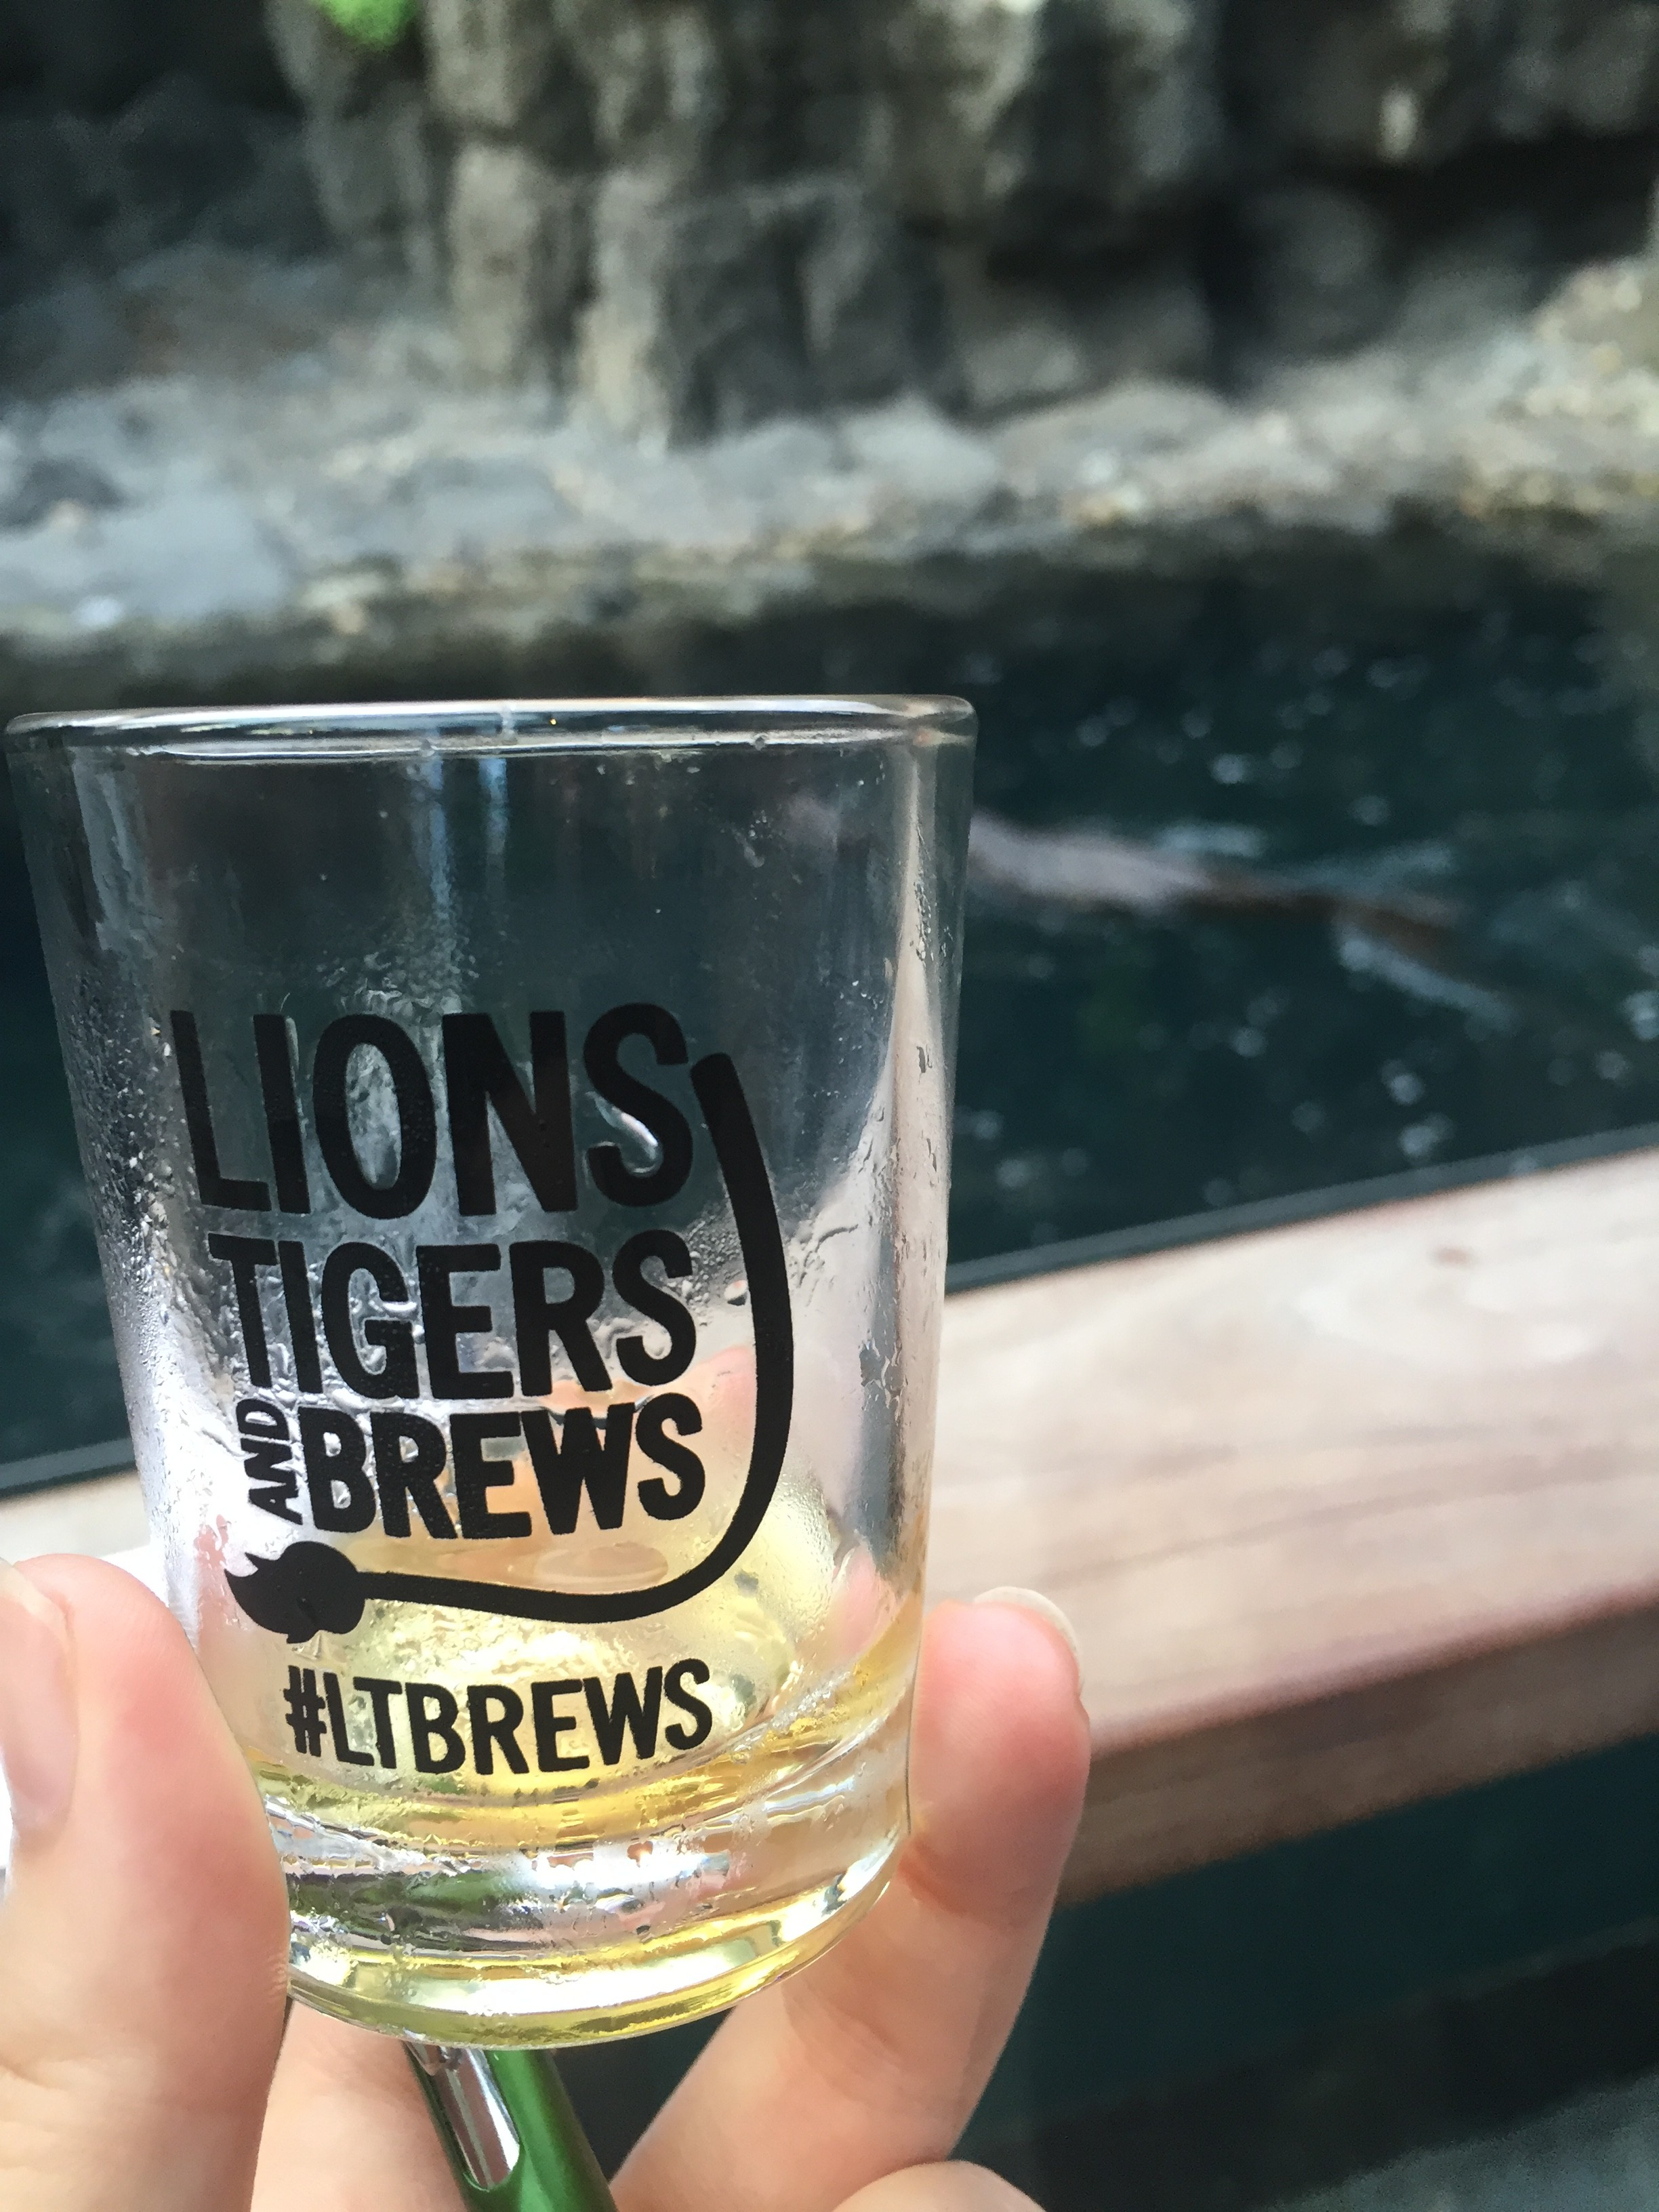 Lions, Tigers and Brews at the Central Park Zoo